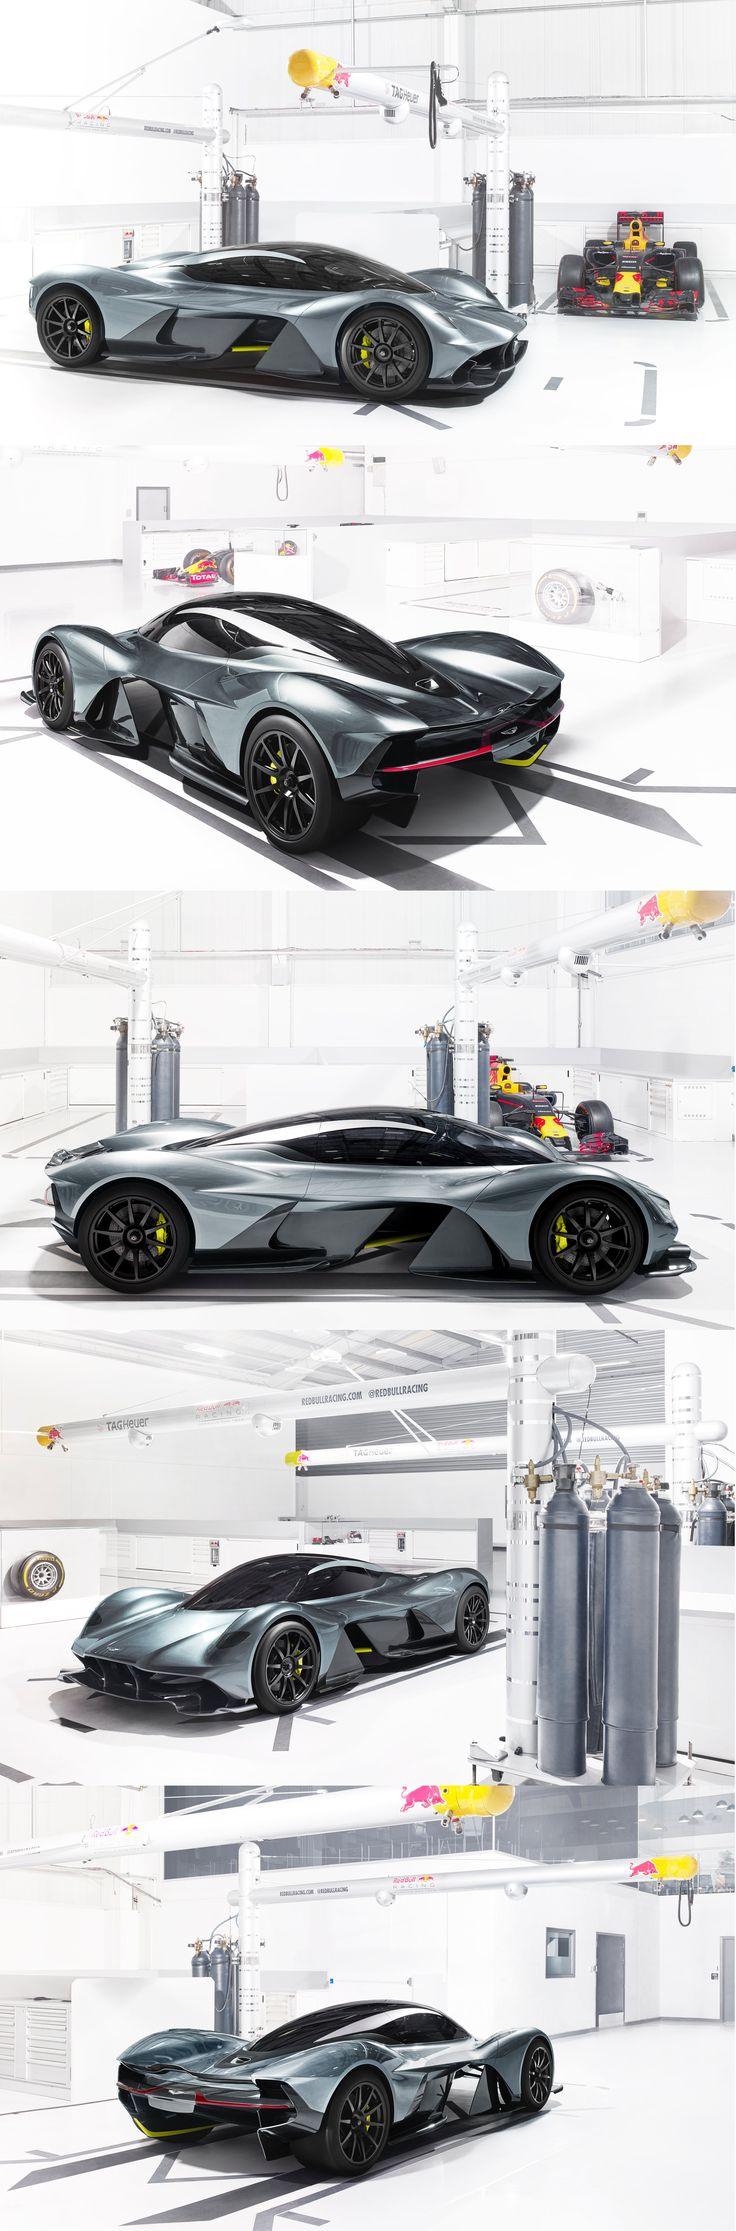 Aston Martin AM-RB 001: Meet Aston Martin And Red Bull Racing's Insane V12…